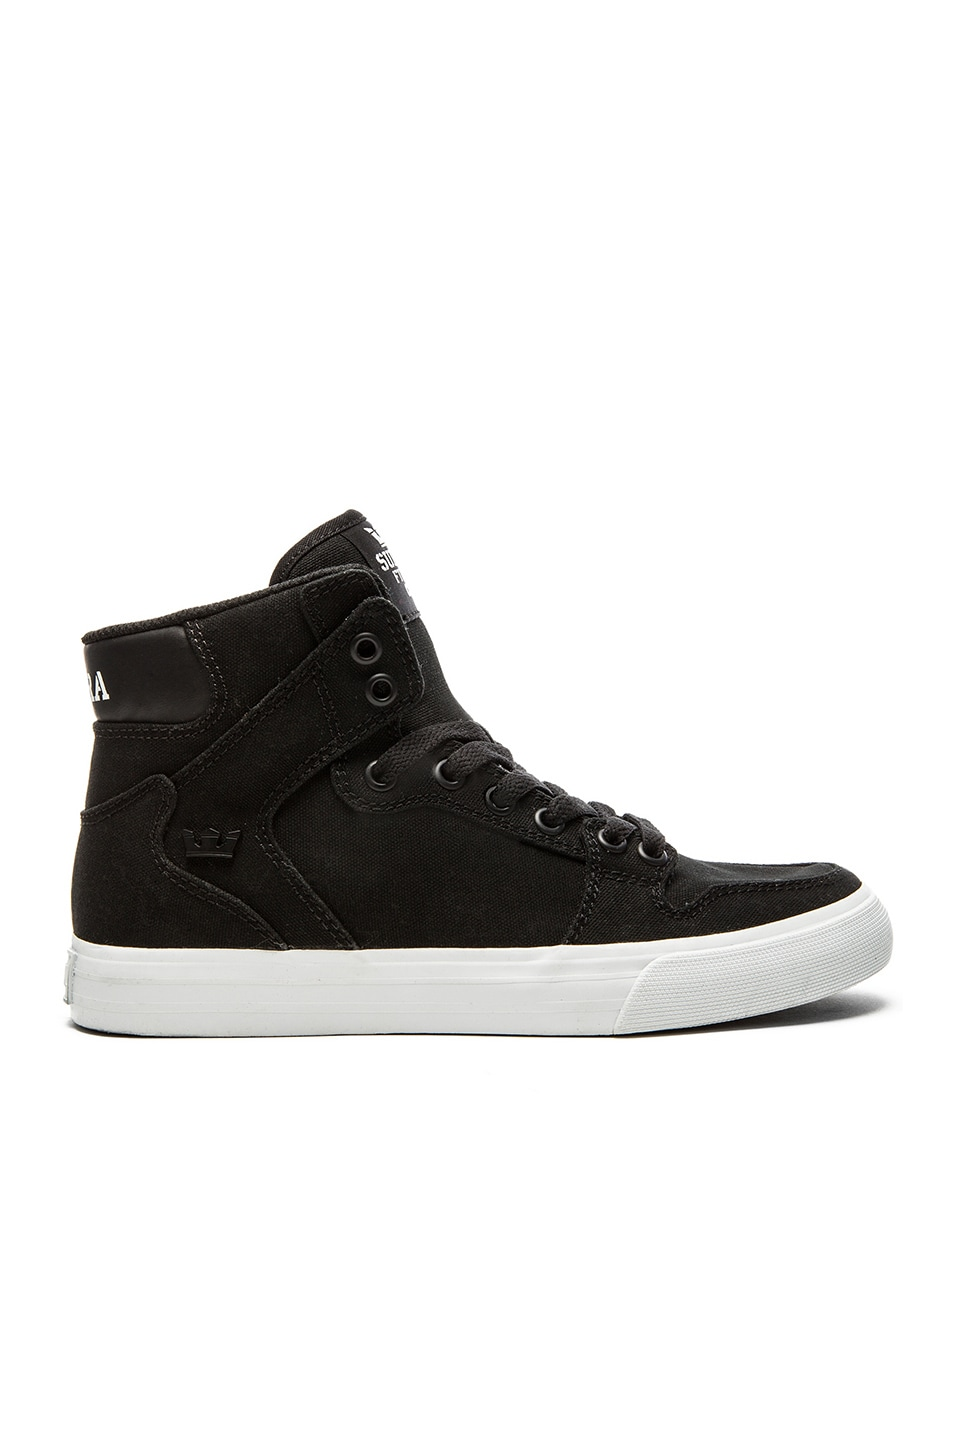 Supra Vaider Sneaker in Black